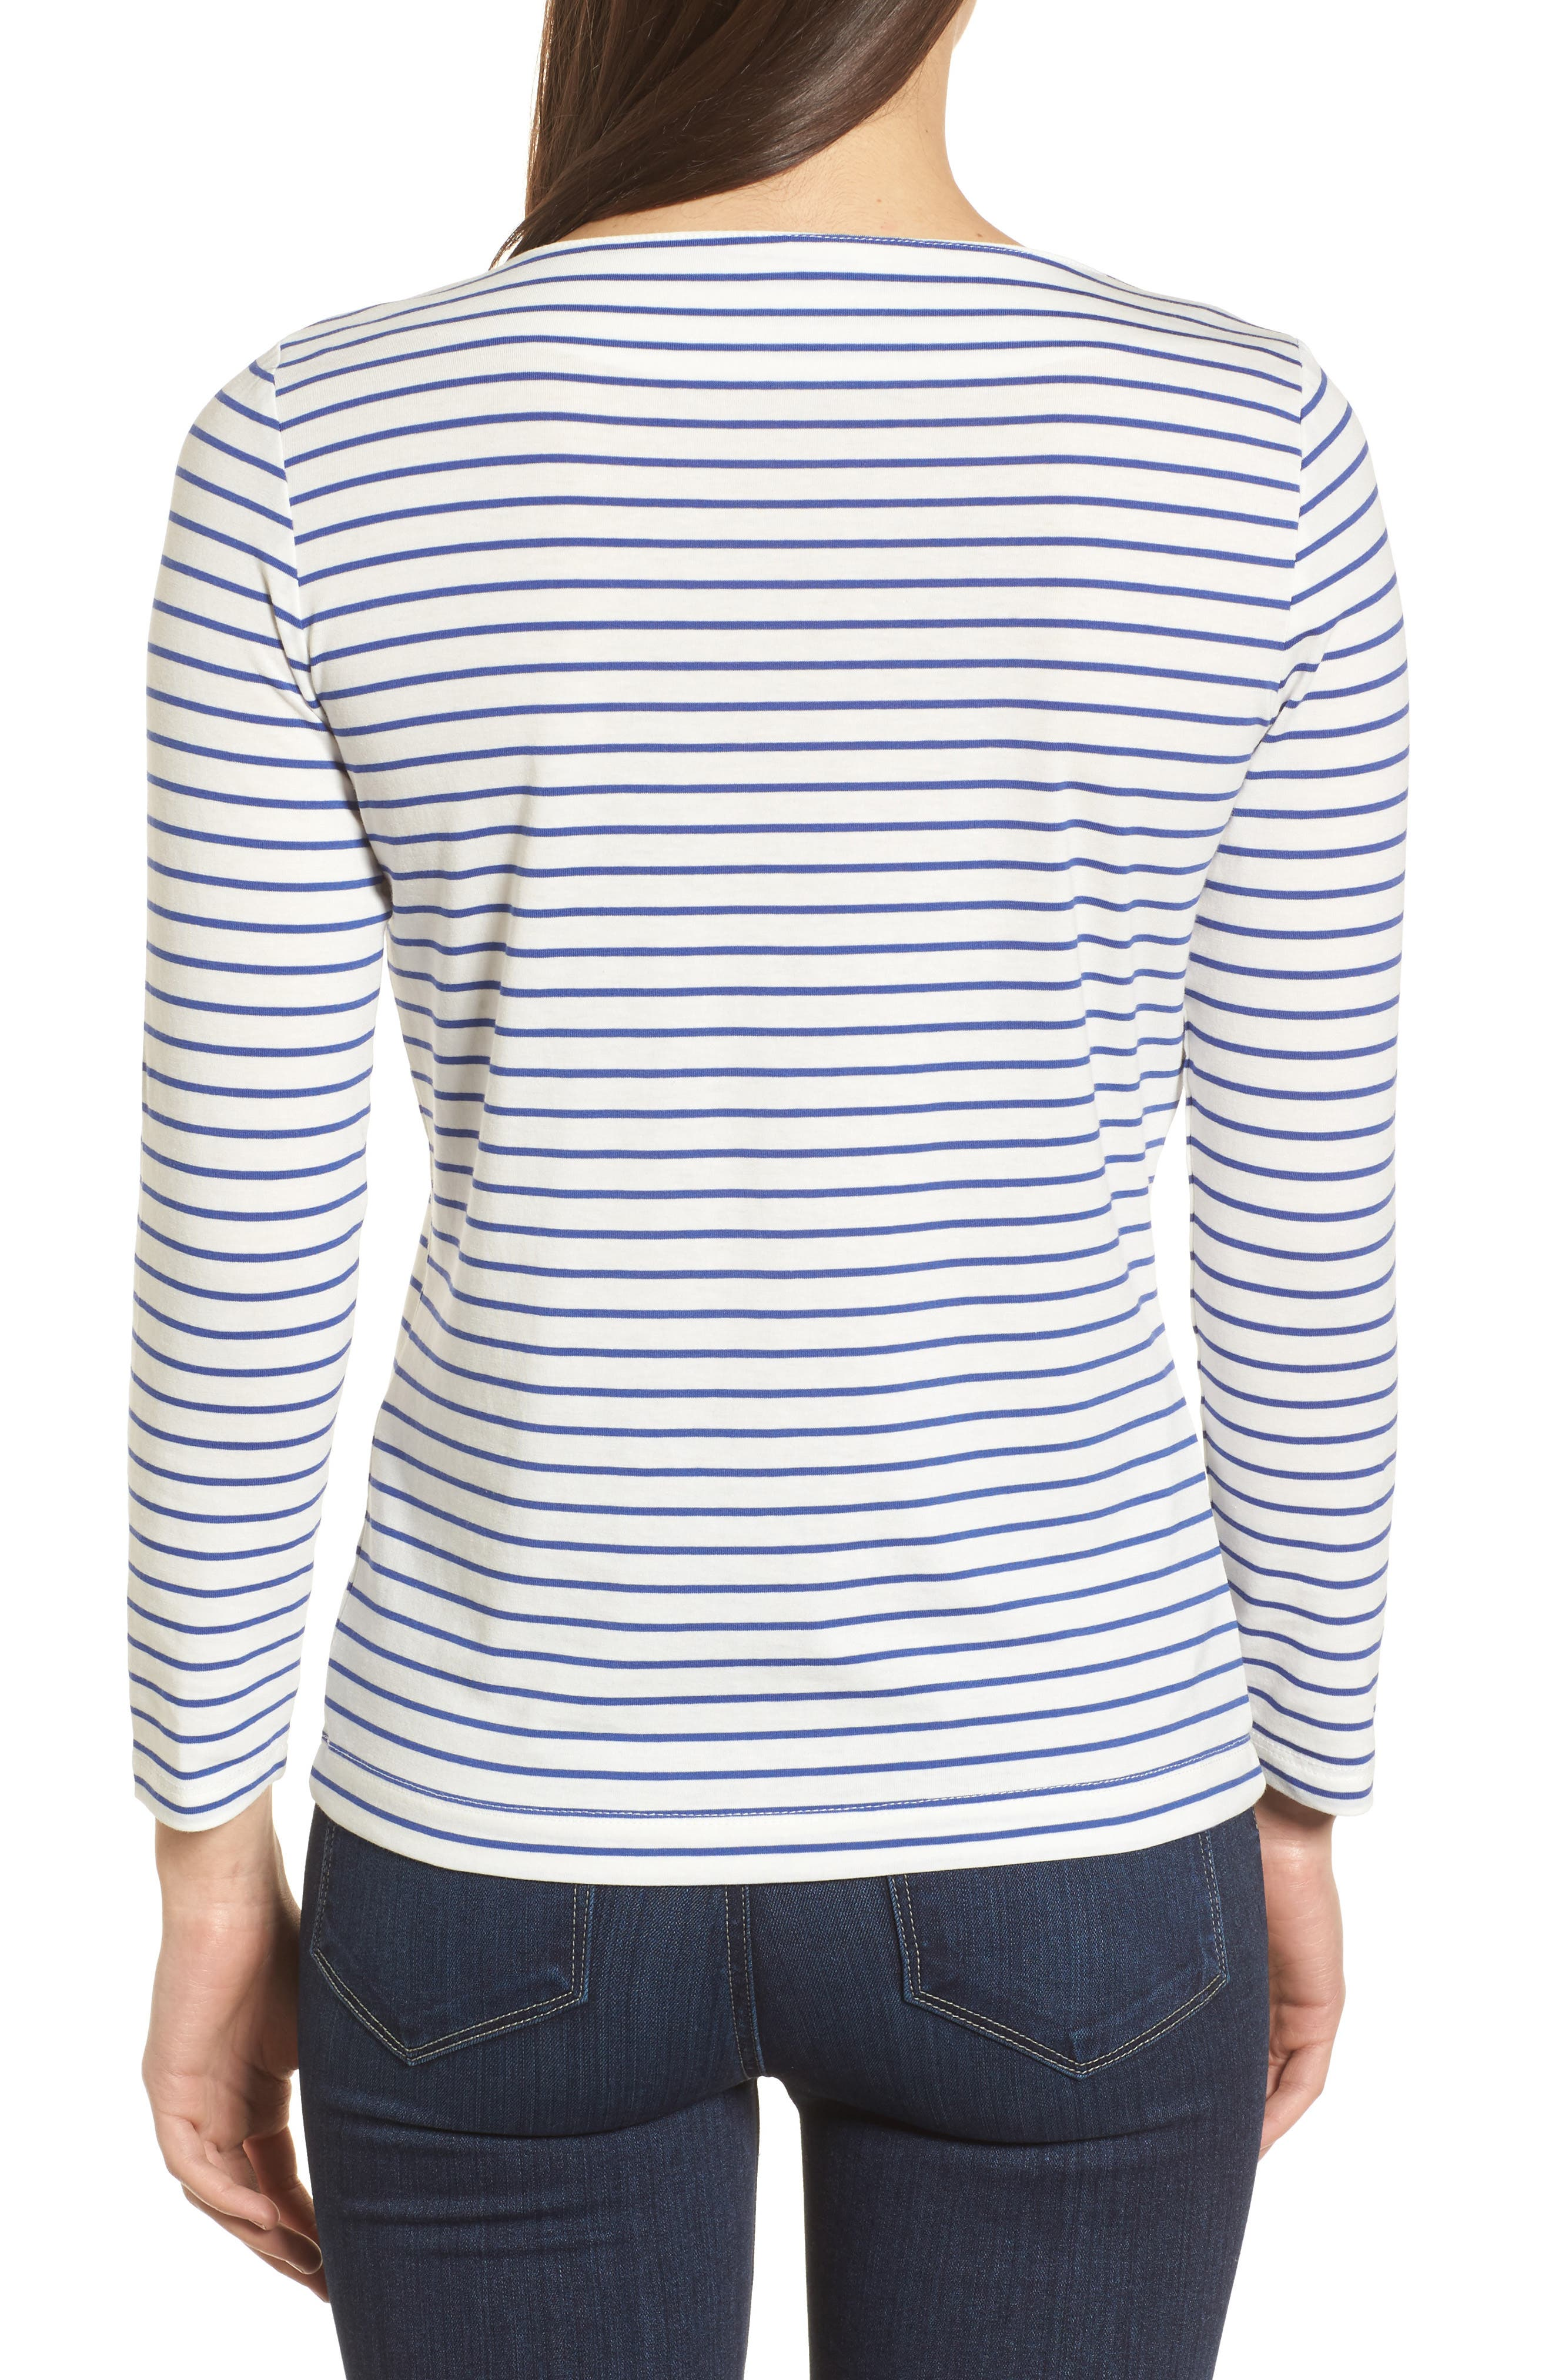 Stripe Knit Boatneck Top,                             Alternate thumbnail 2, color,                             100